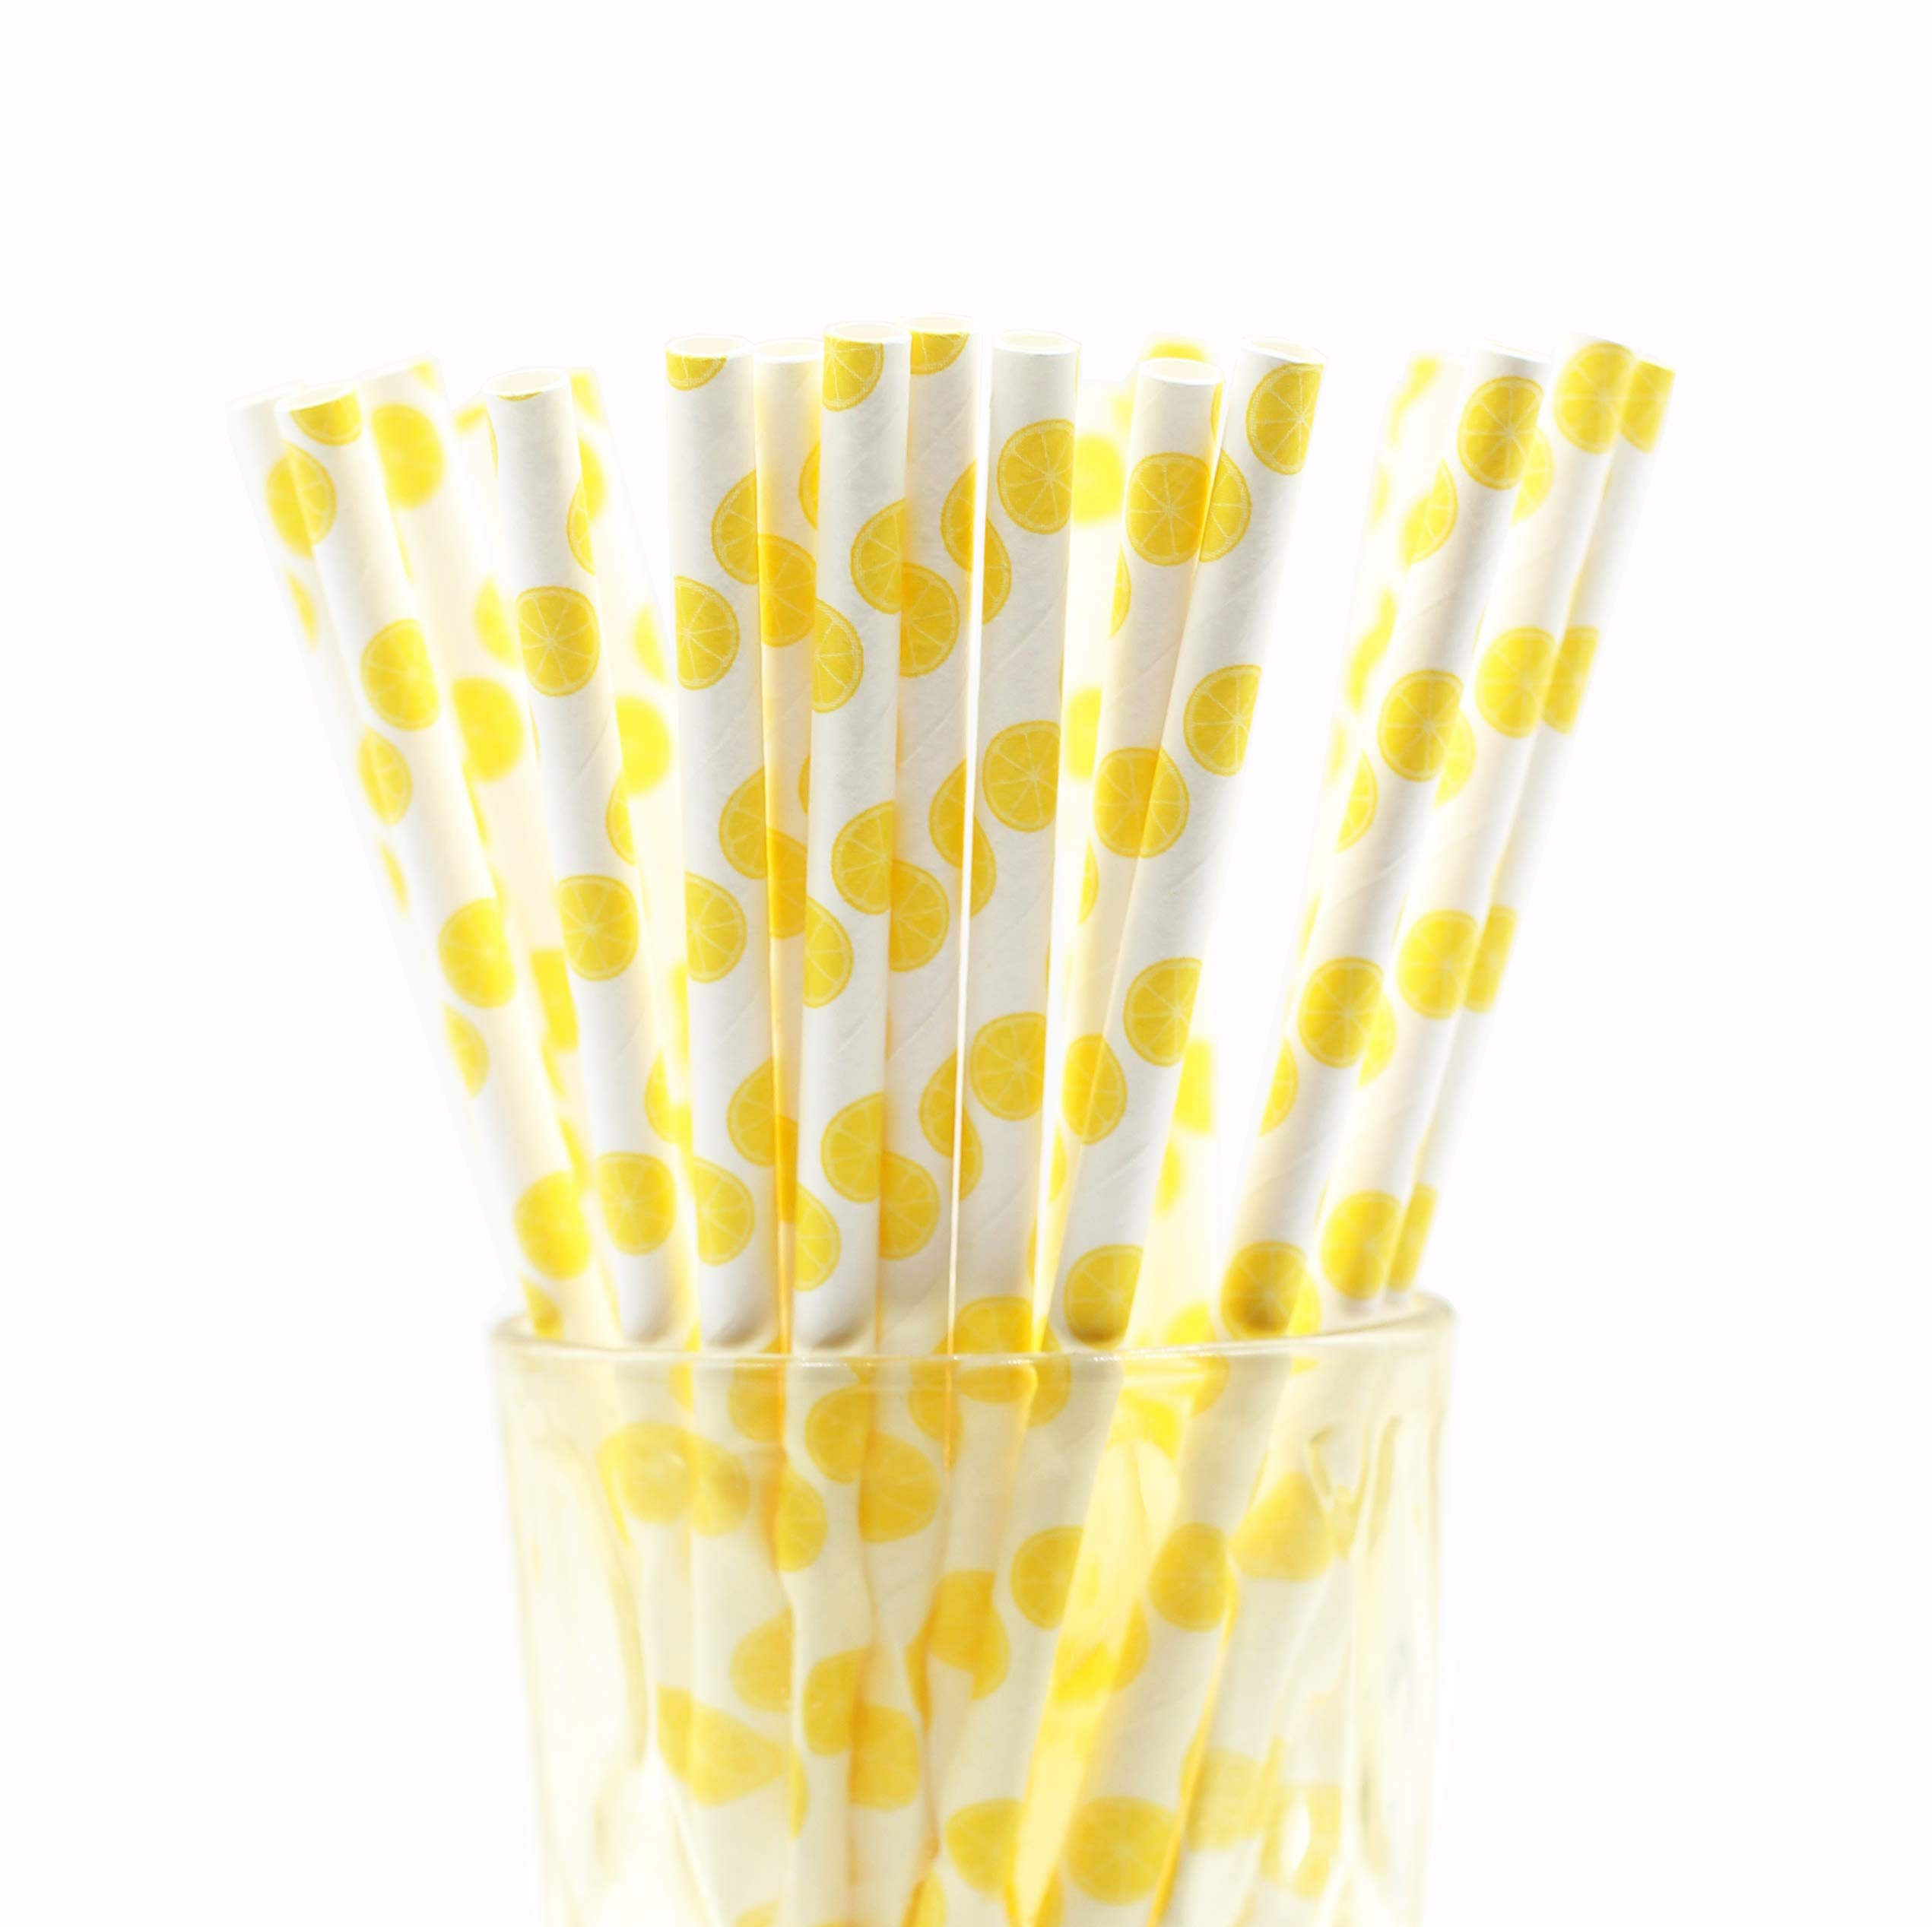 50-Pack Biodegradable Paper Drinking Straws for Party Supplies Bridal/Baby Shower Wedding Decorations, Bulk Paper Straws for Juices, Shakes, Smoothies, Lemon Theme